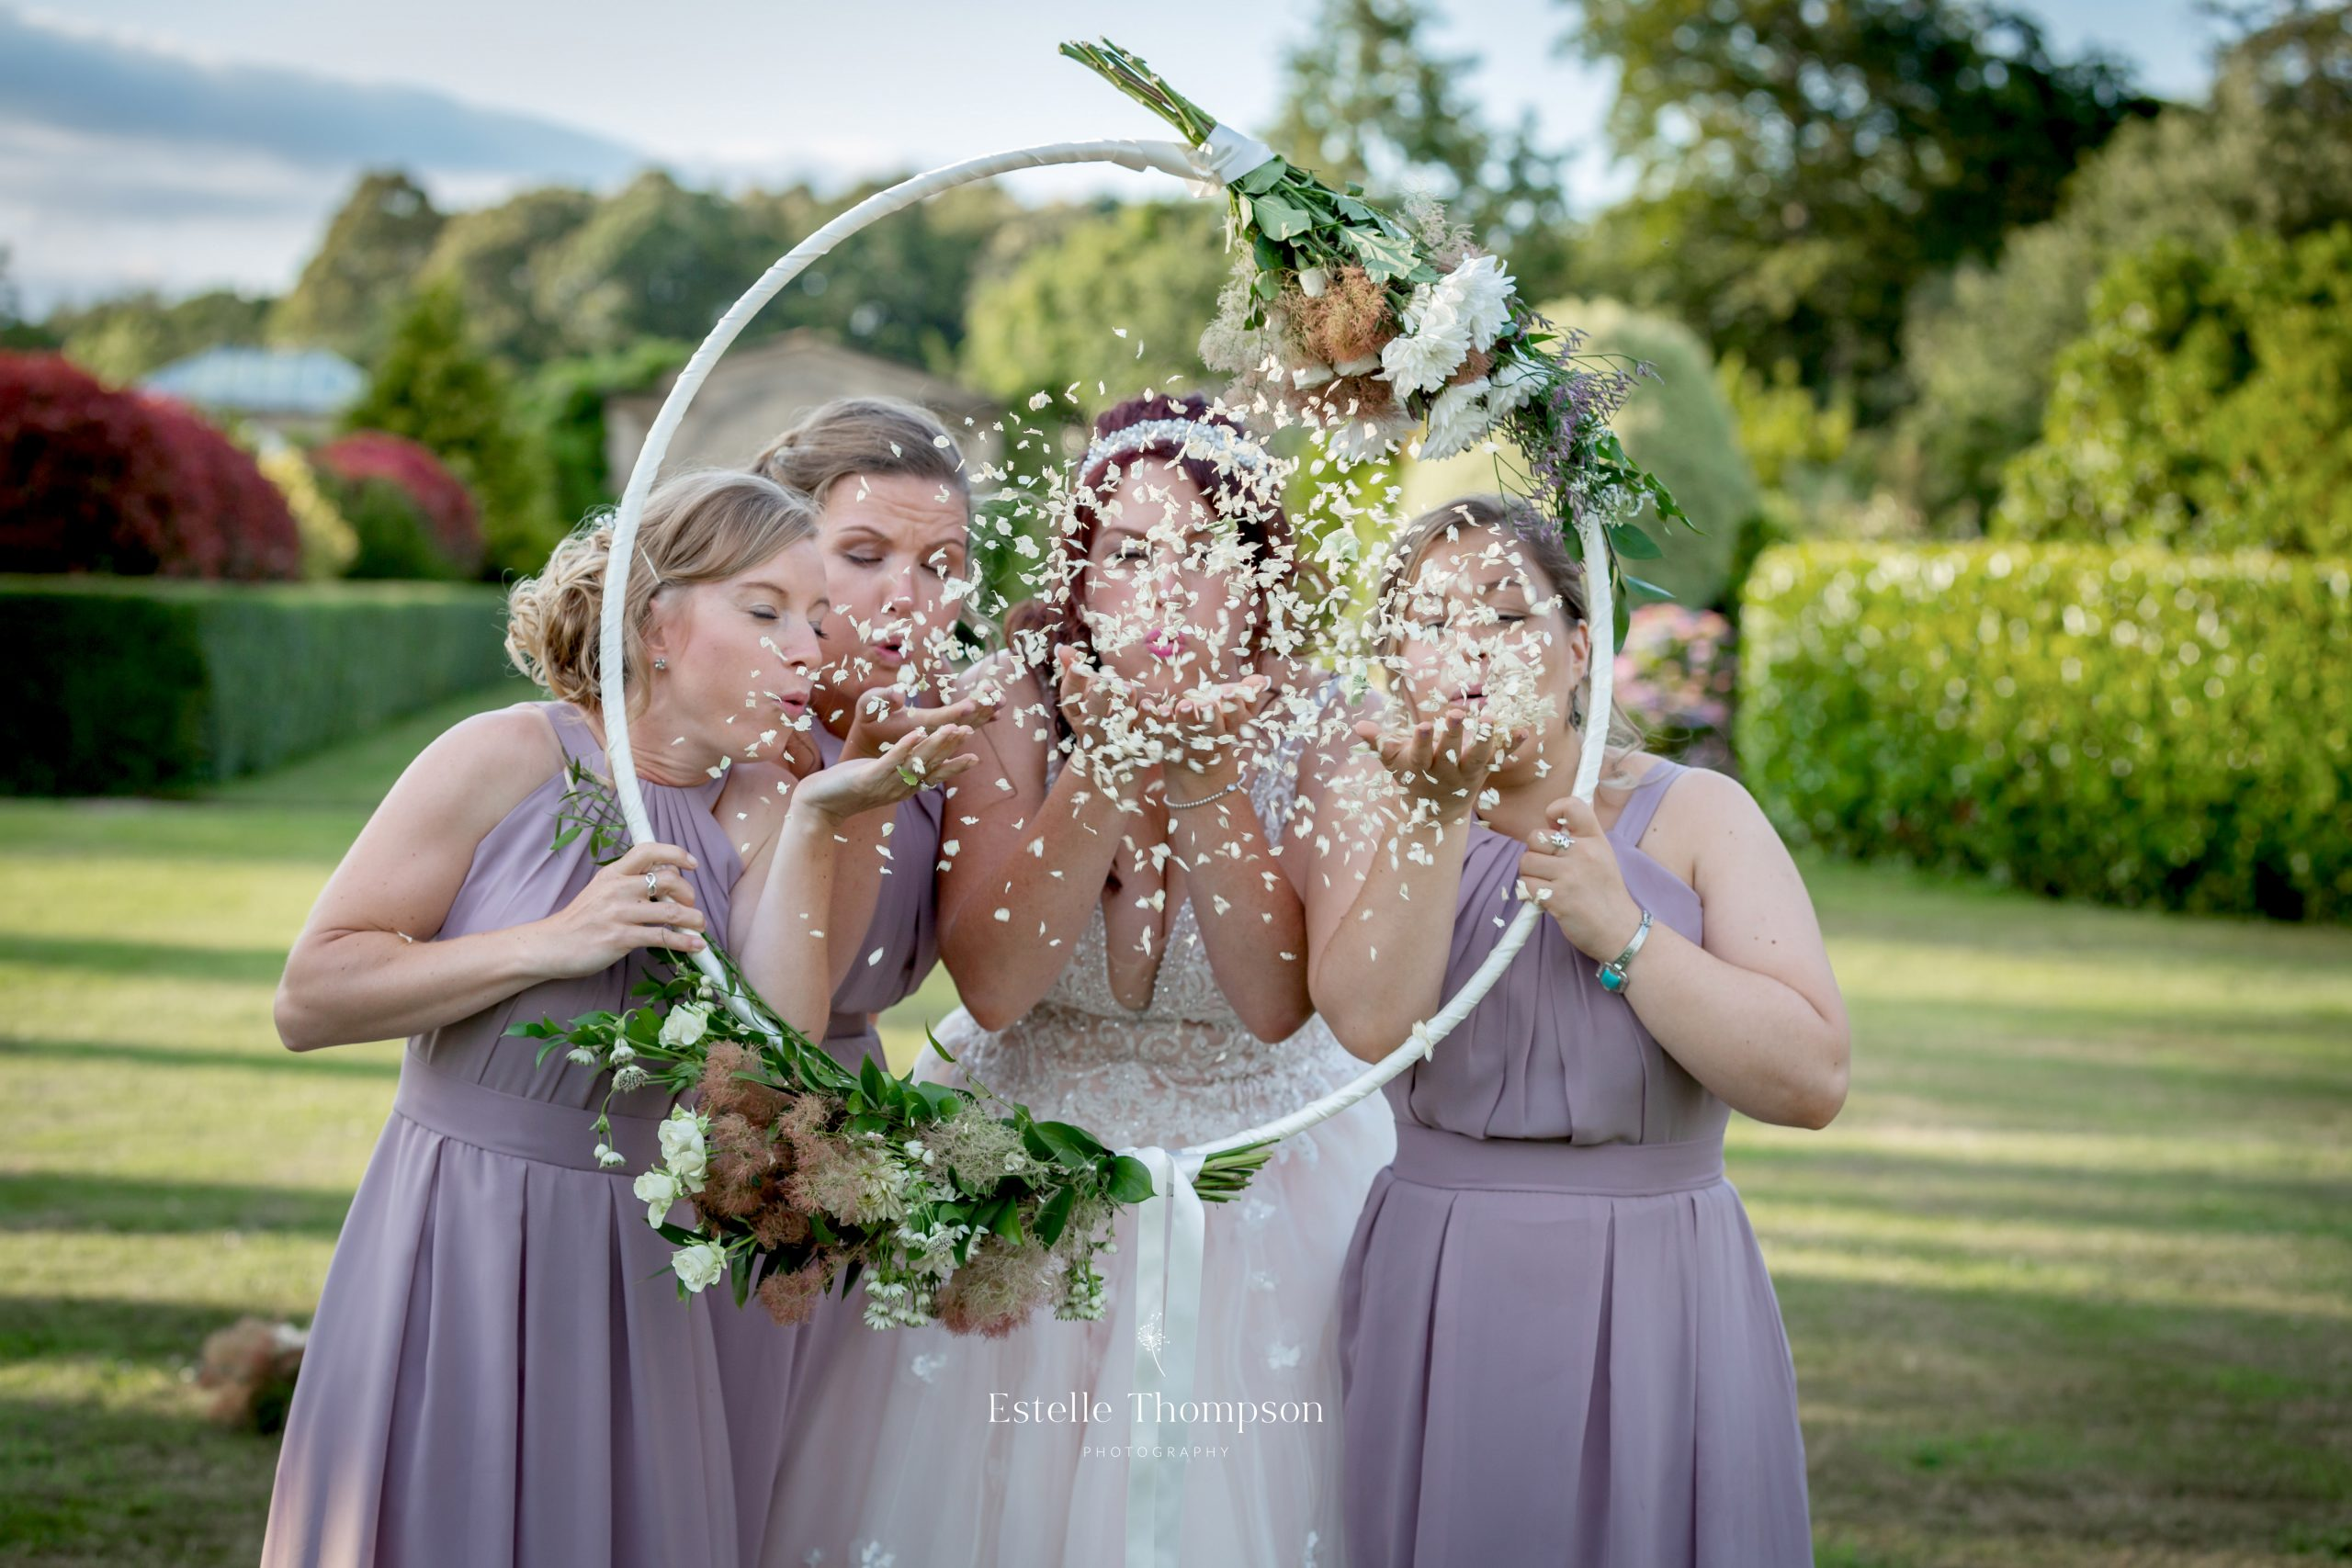 Bride and bridesmaids blow confetti through a floral hoop by wedding photographer kent